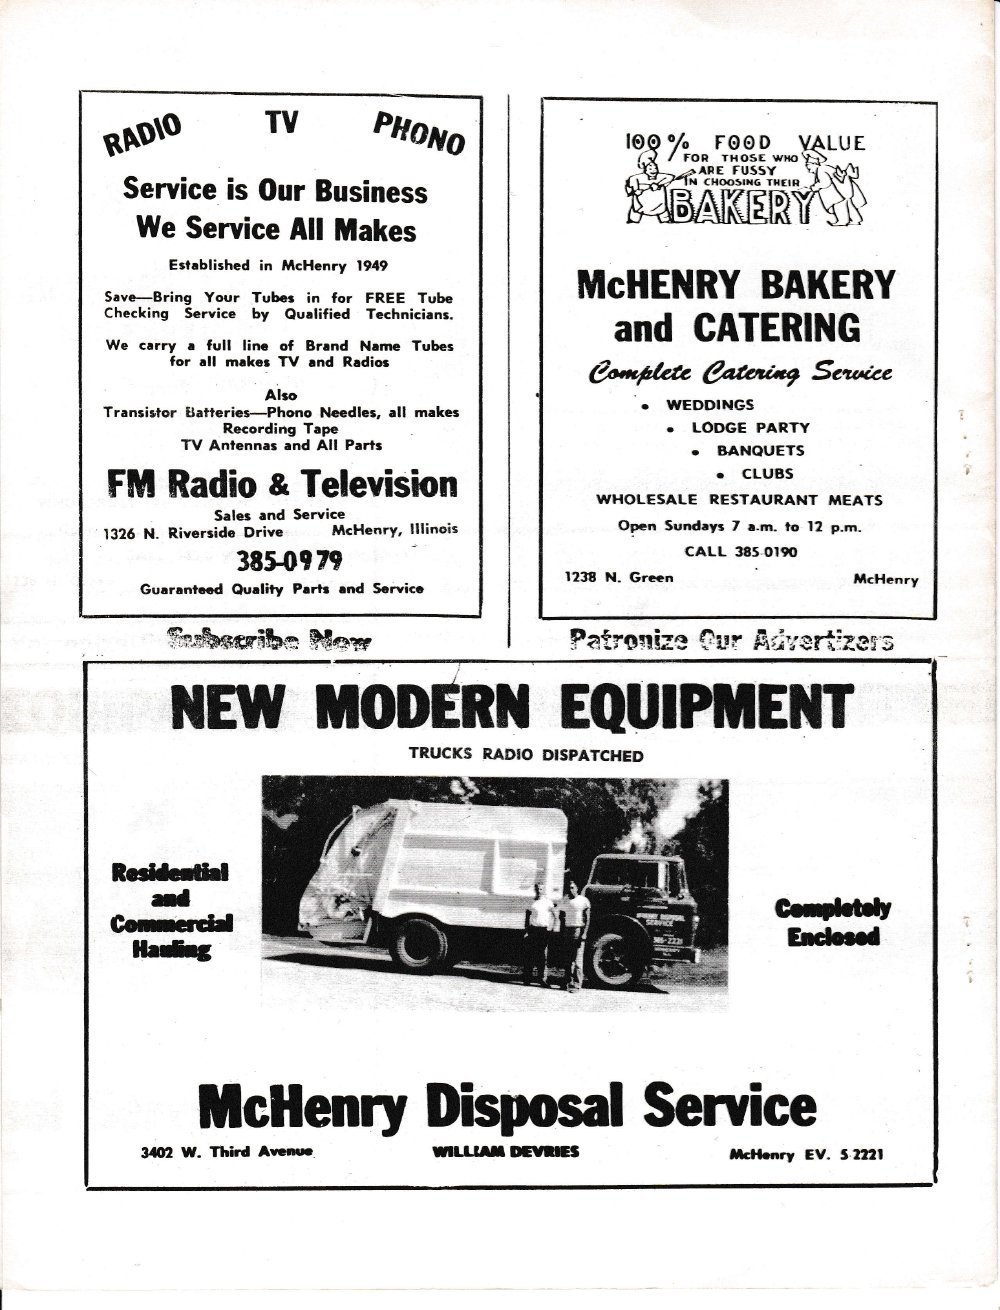 The Pictorial Newsletter: July 29, 1964